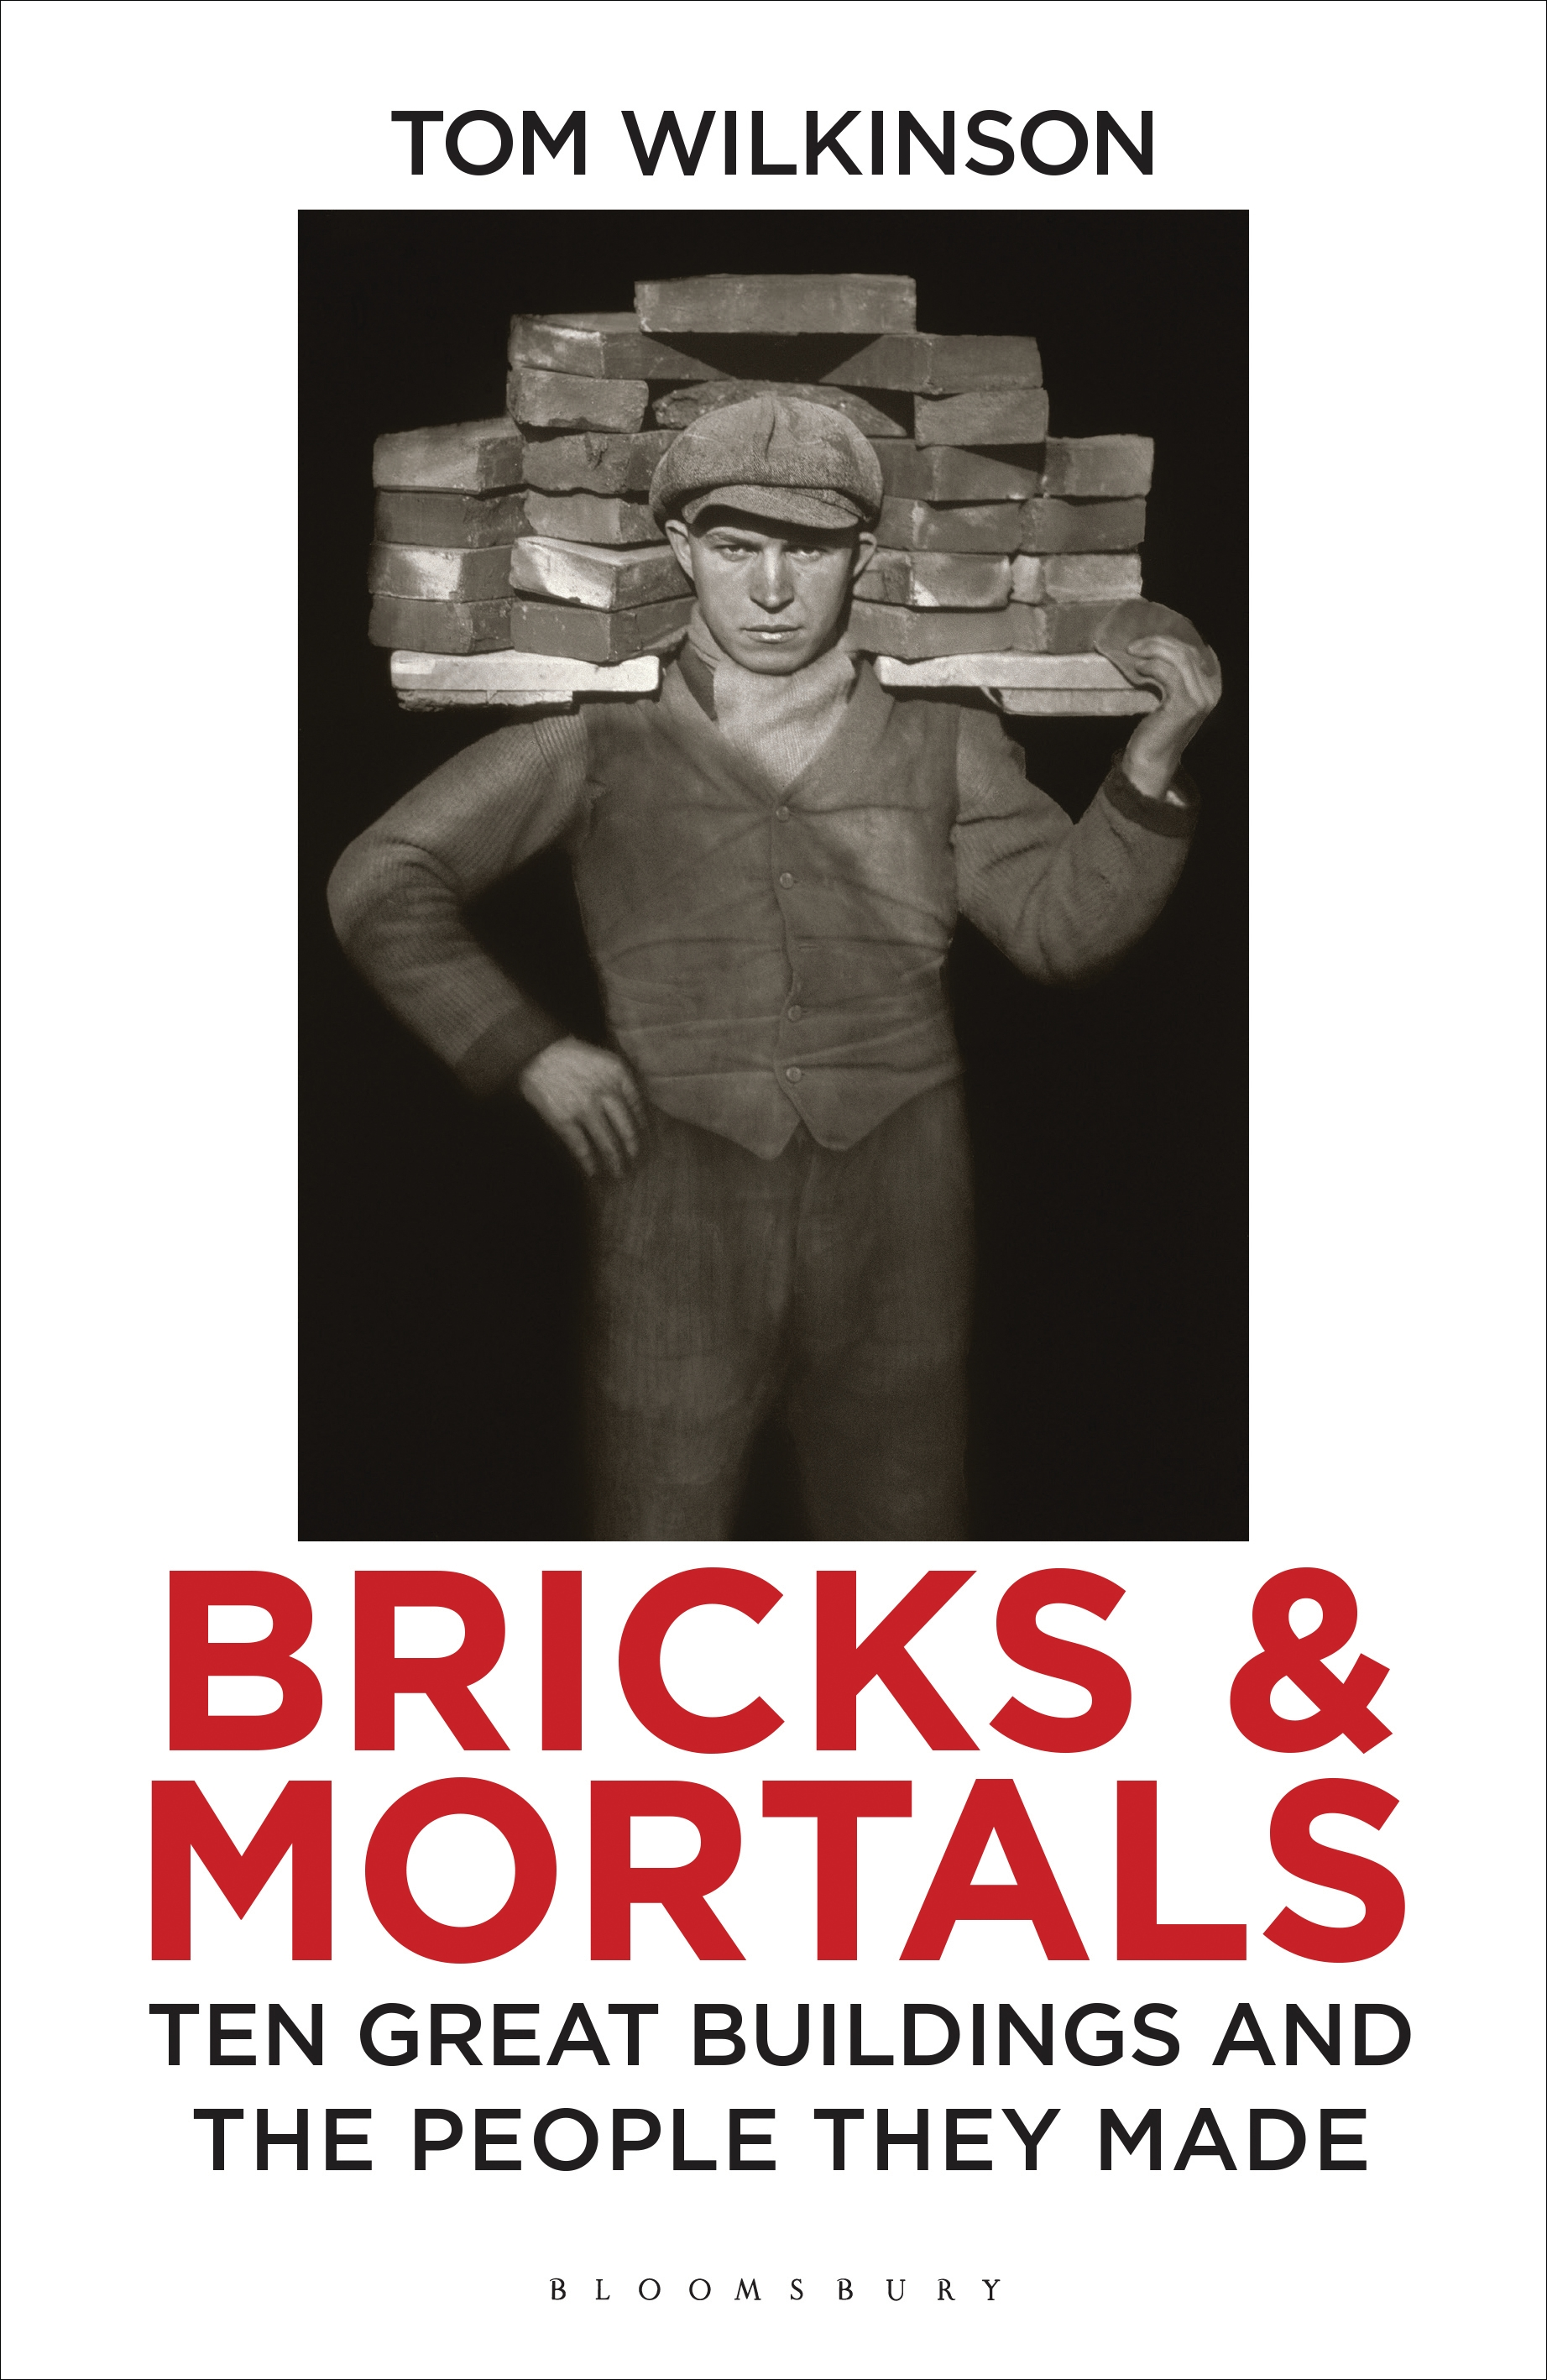 Bricks & Mortals Ten Great Buildings and the People They Made